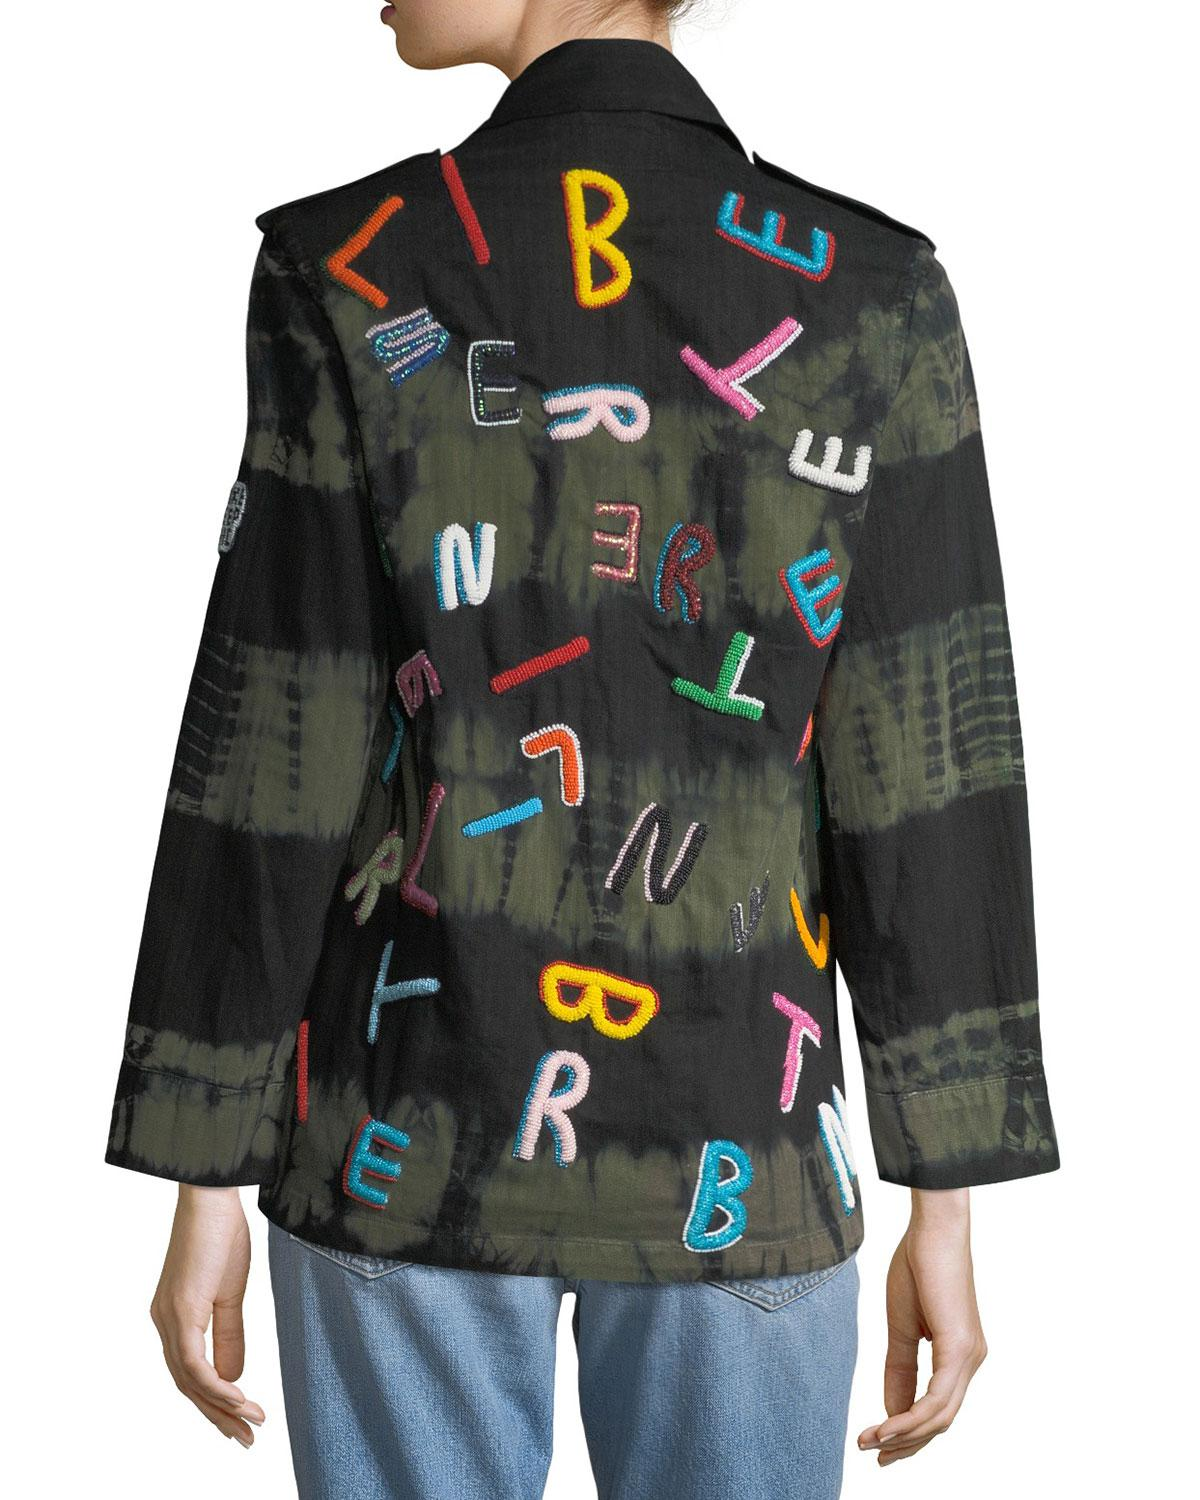 7742a8690b479 Lyst - Libertine Tie-dye Army Jacket With Letter Embroidery - Save 30%